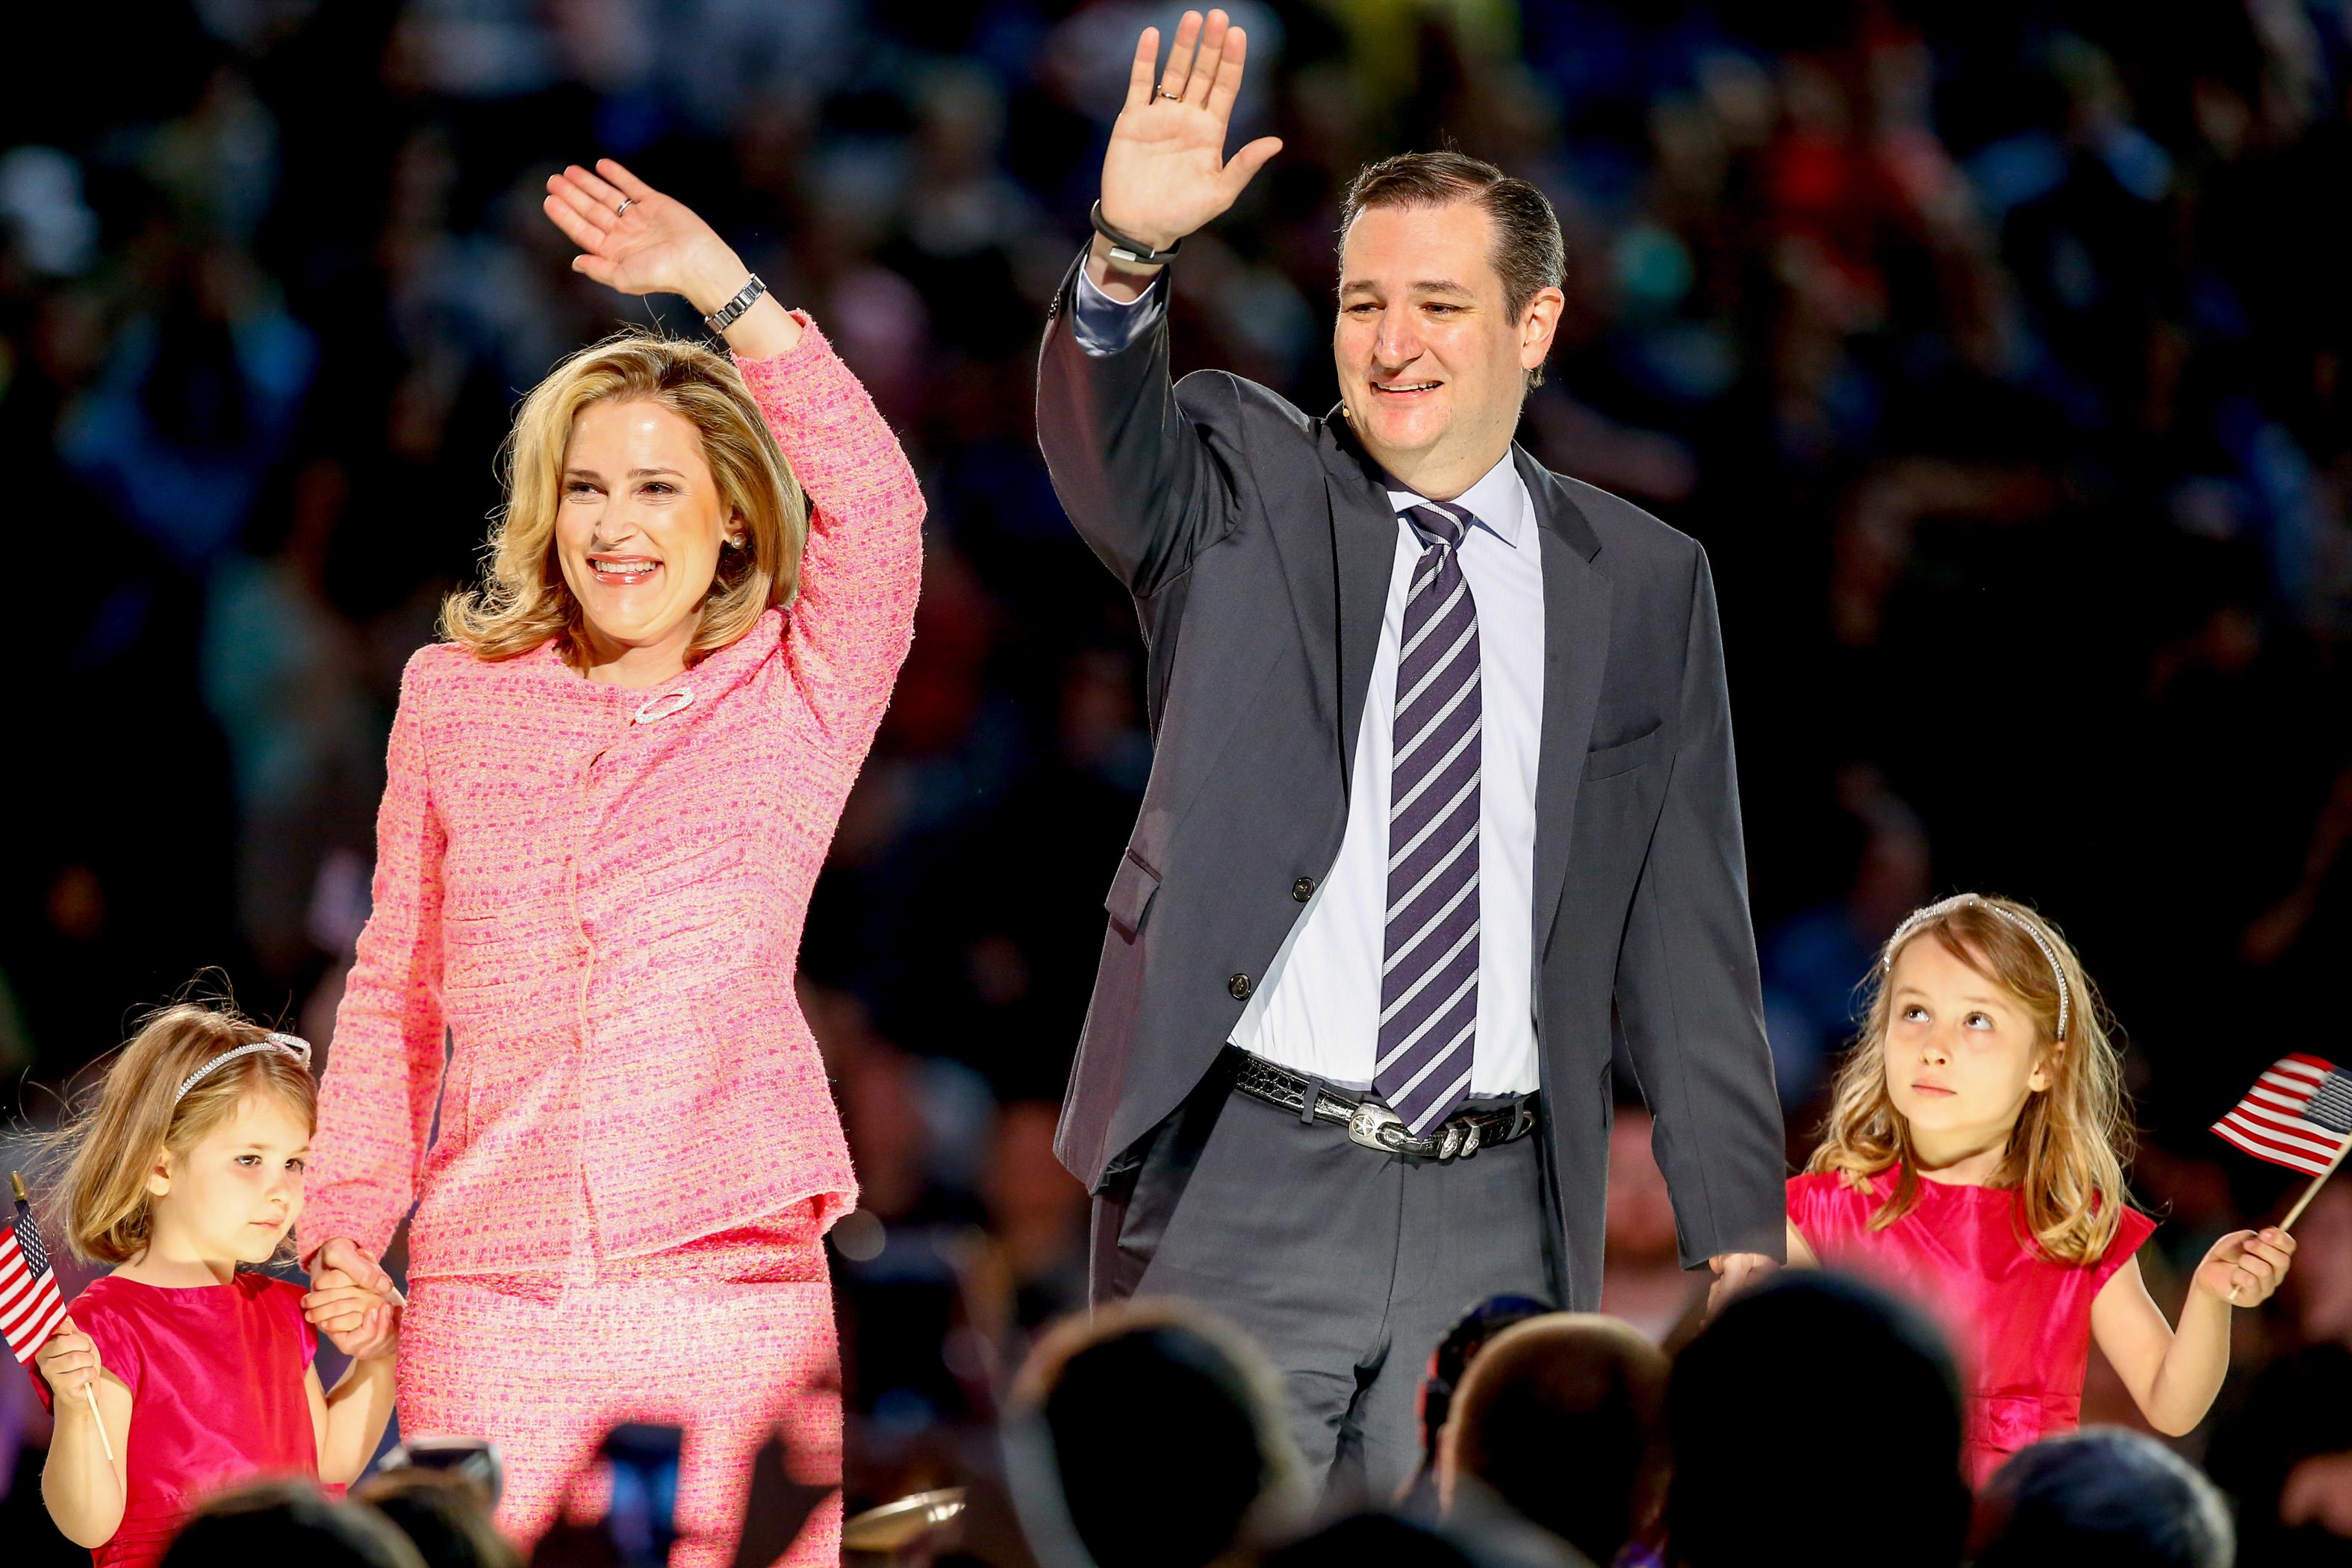 Cruz eyes insurance via Obamacare, a law he vows to scrap